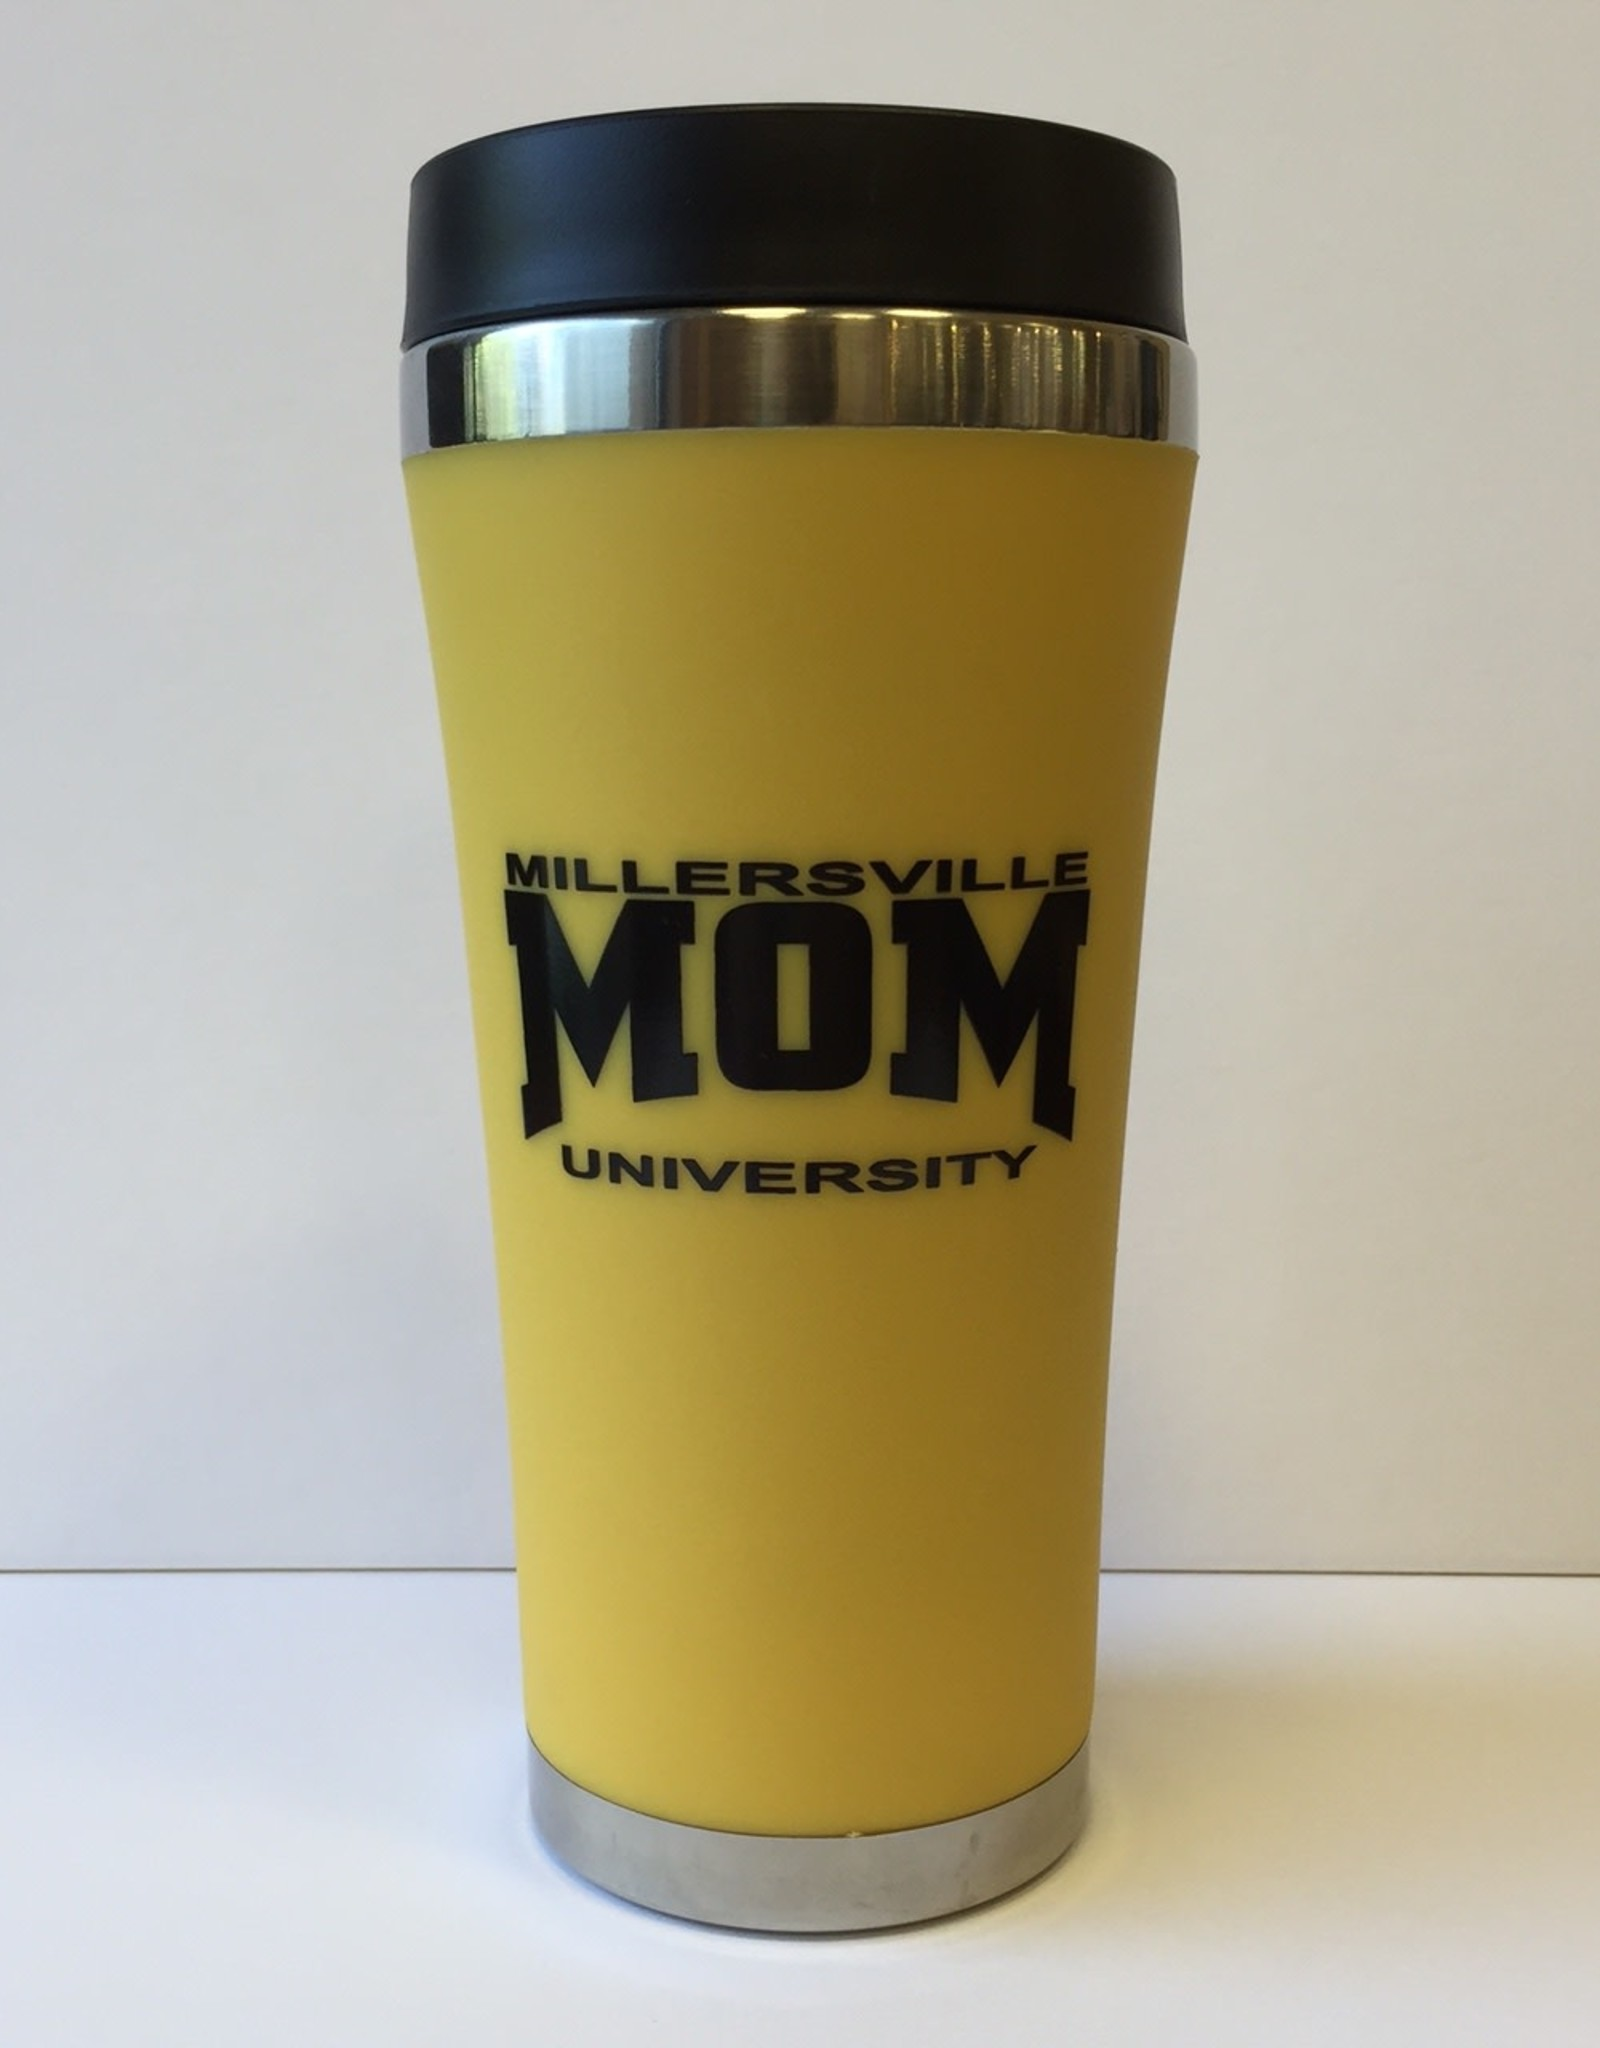 Millersville Mom Insulated Mug - Yellow